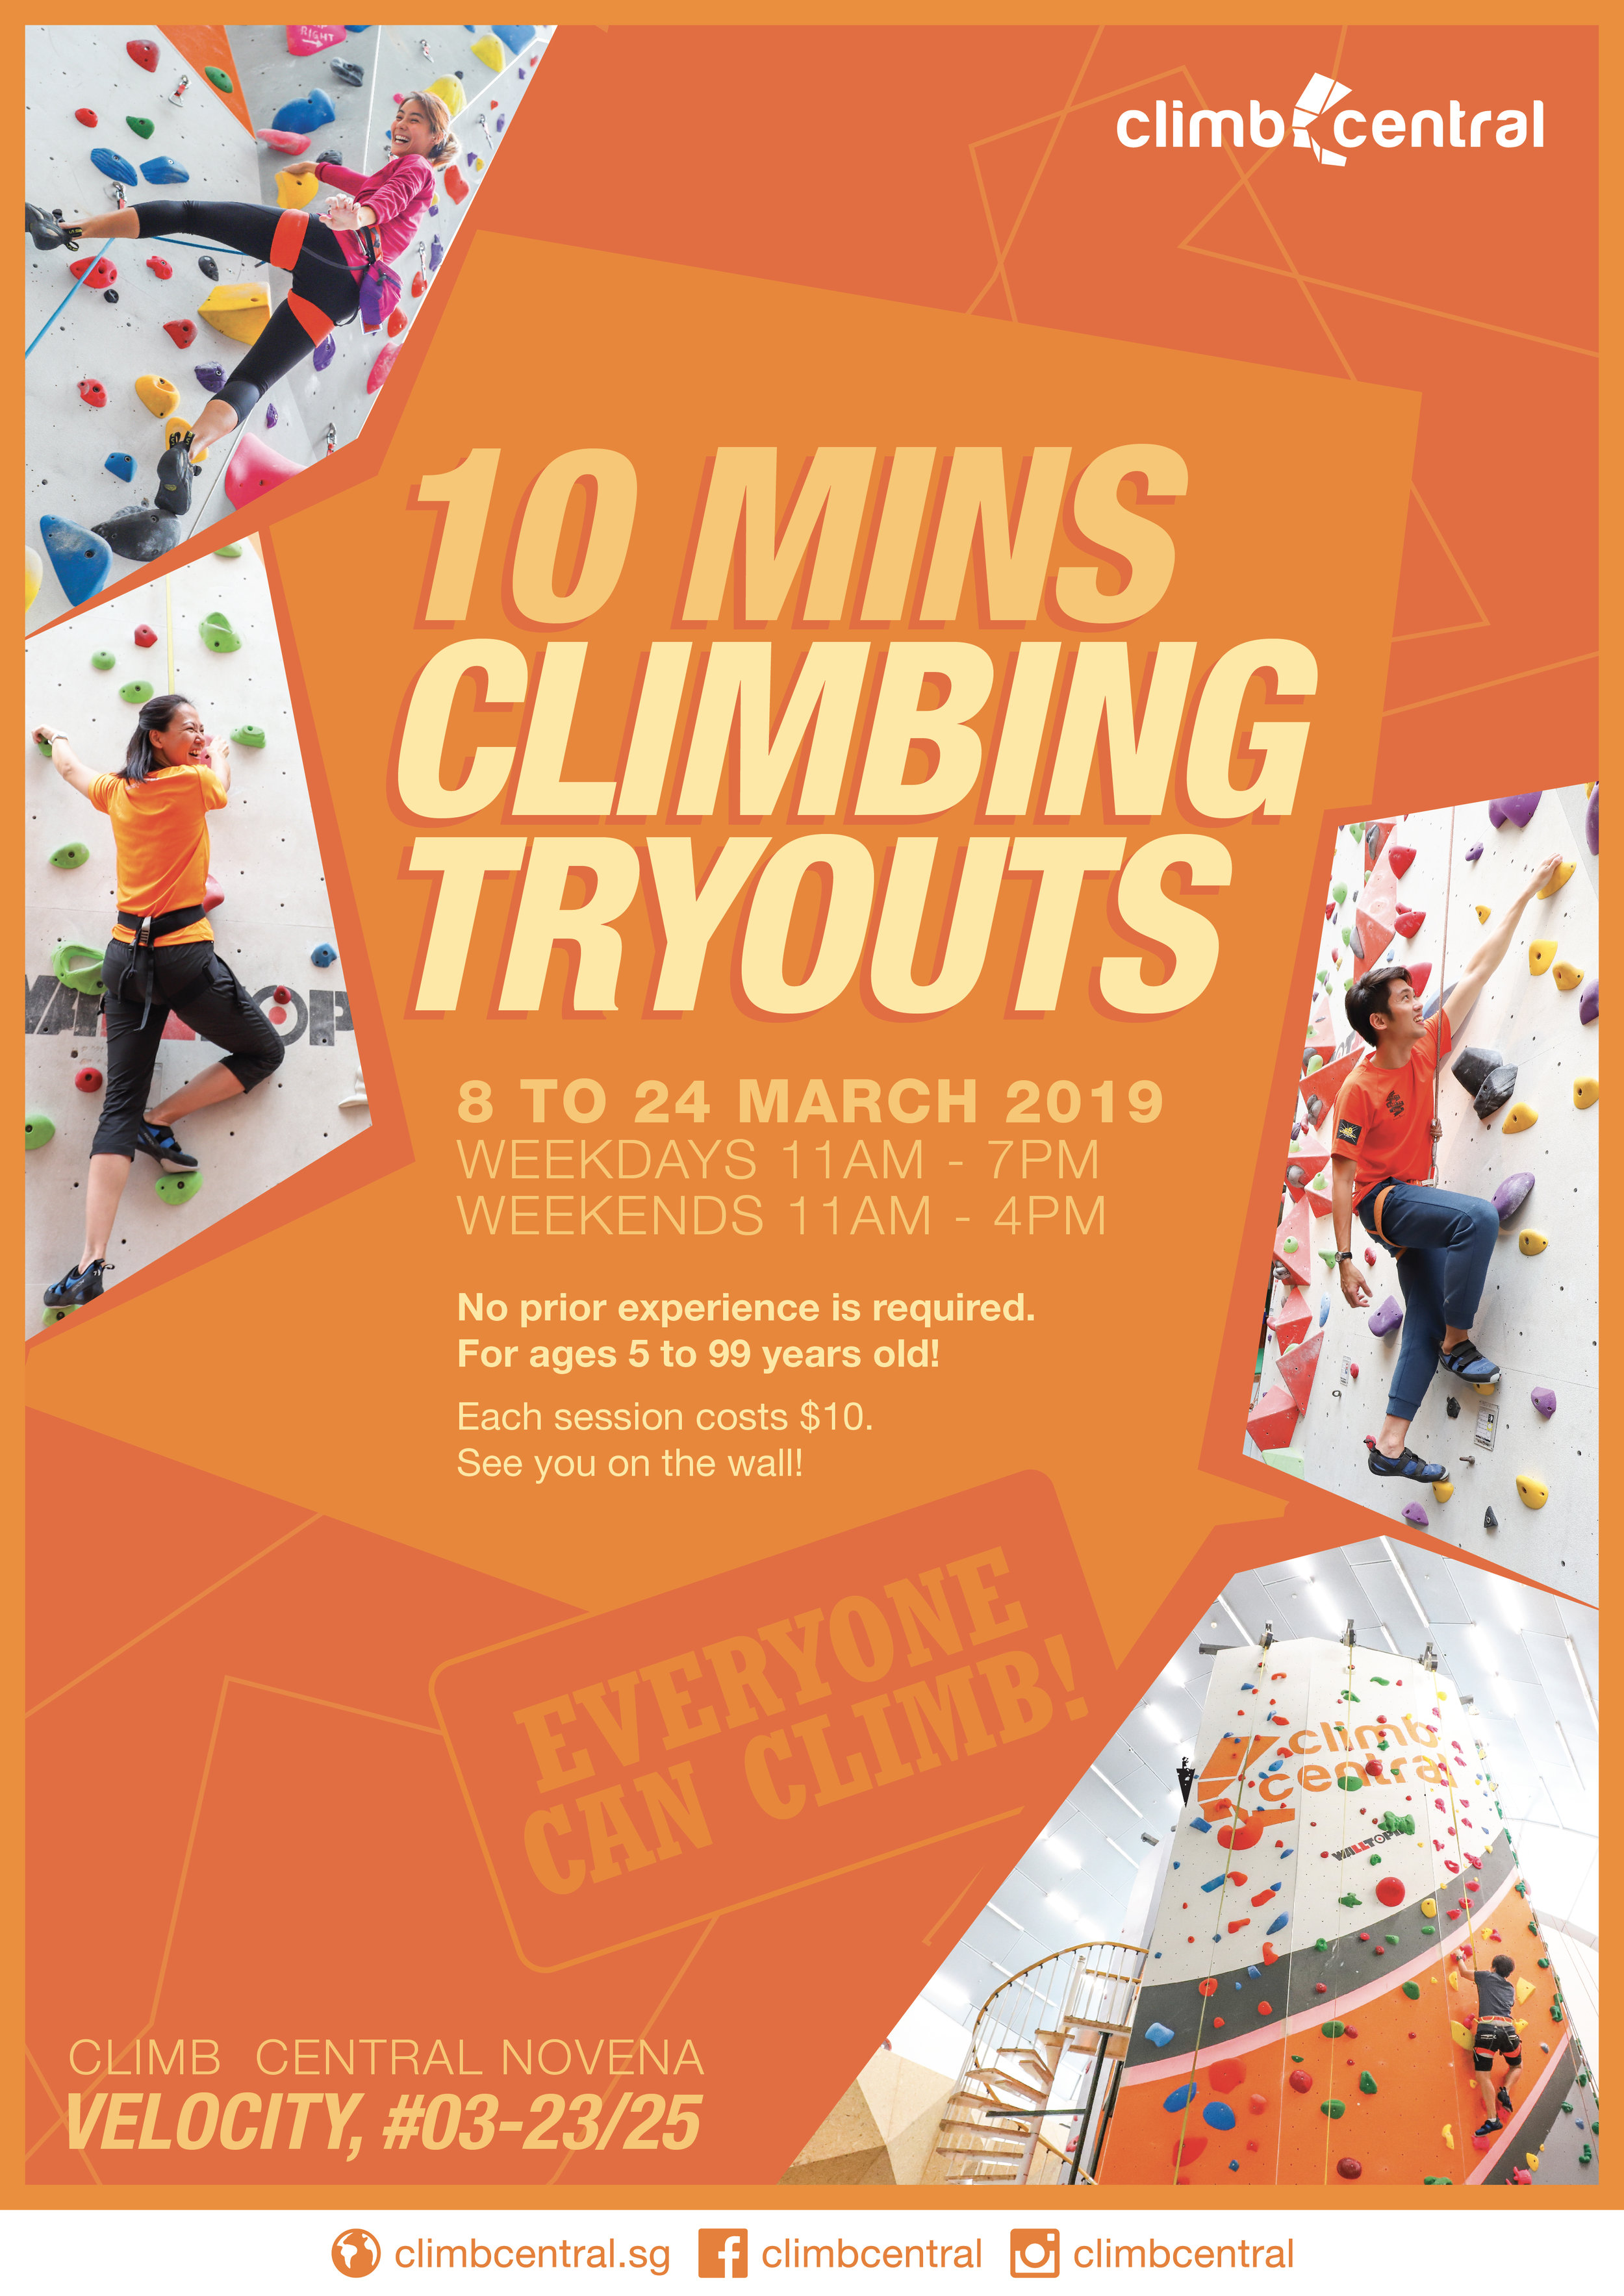 Climb Central Novena - 10 mins climbing tryouts